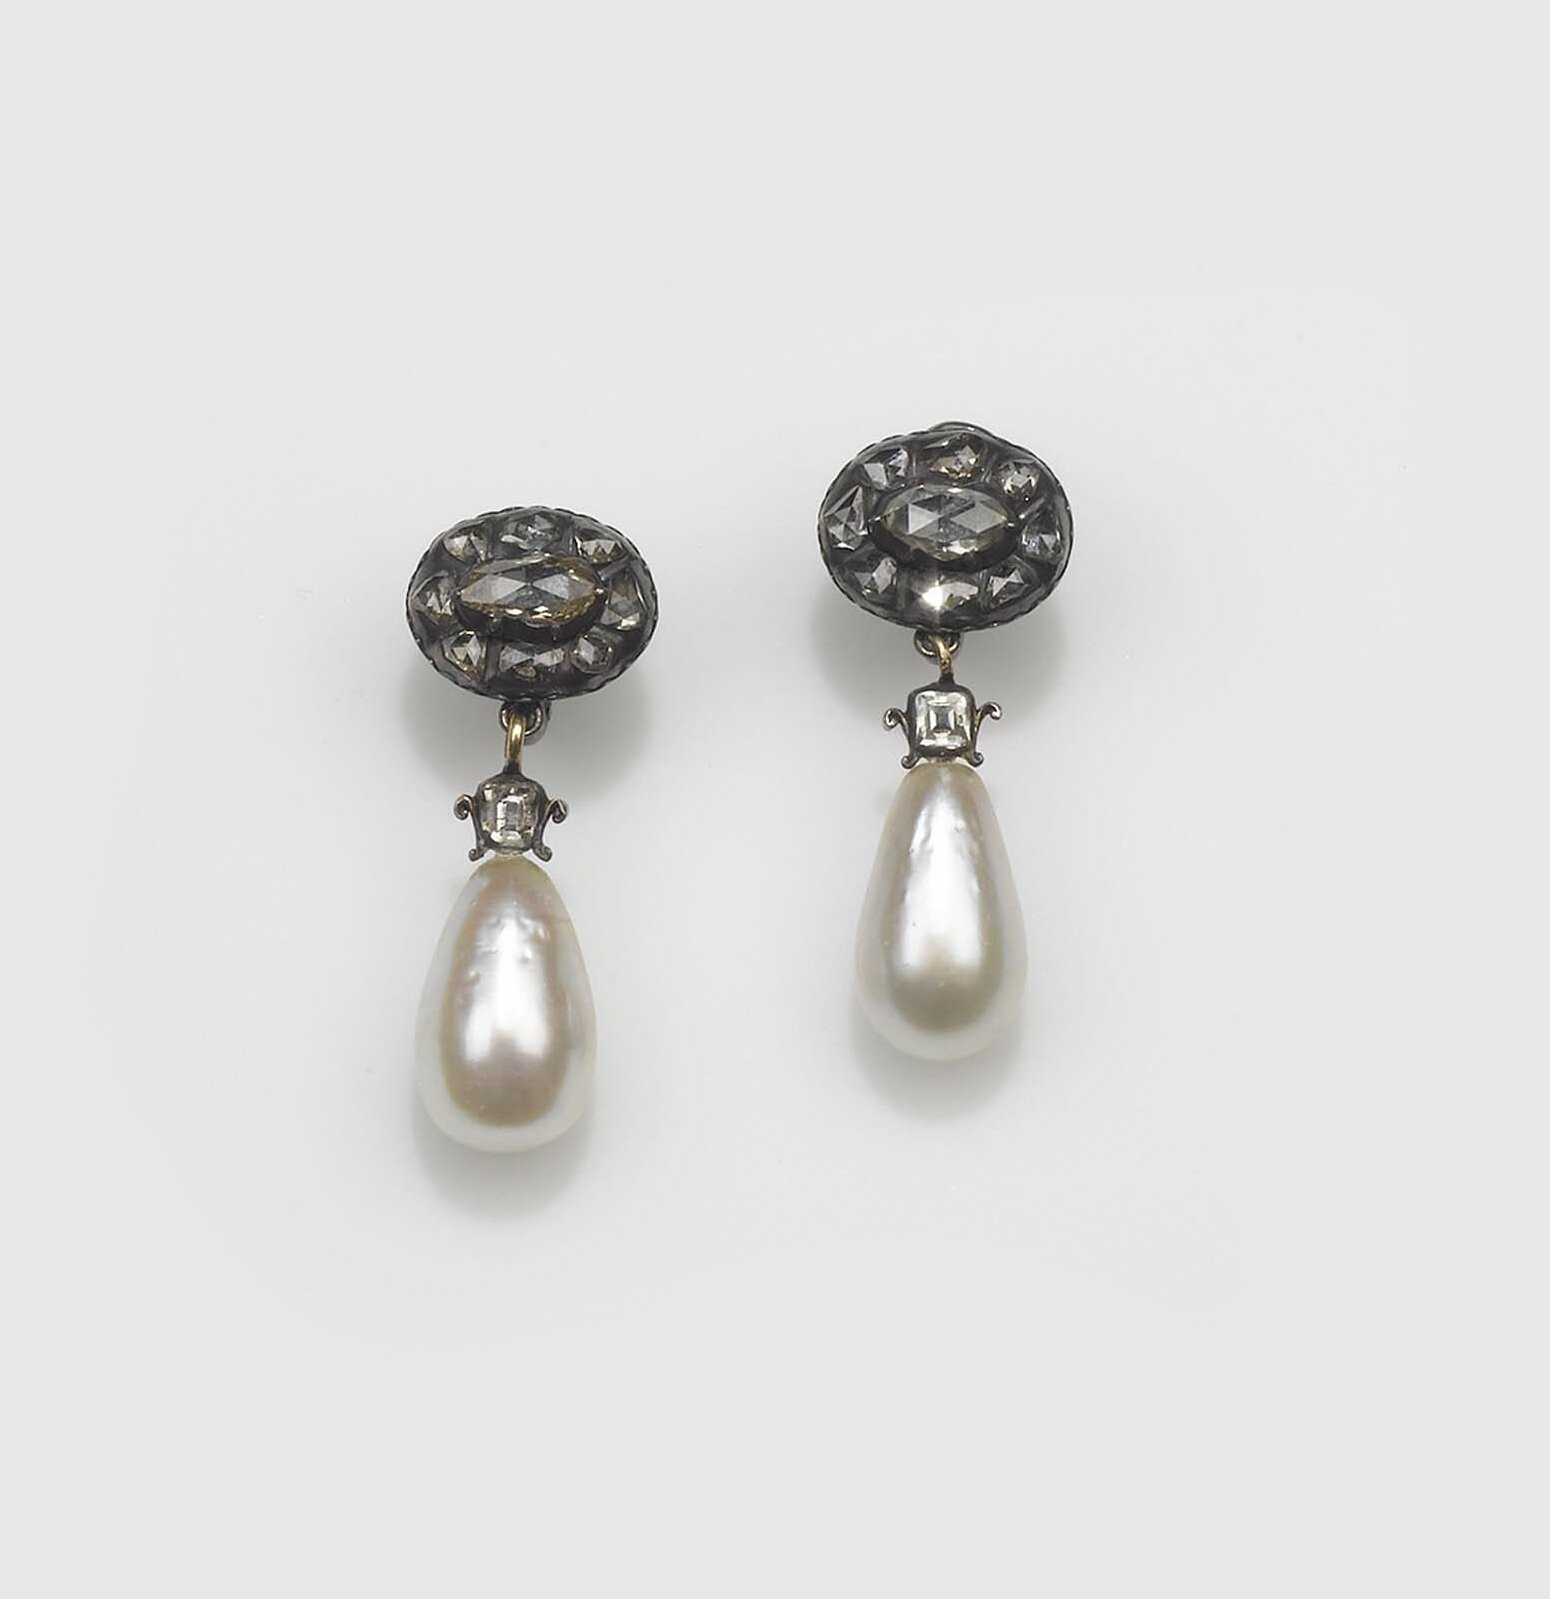 An impressive pair of natural saltwater drop pearl and rose-cut diamond